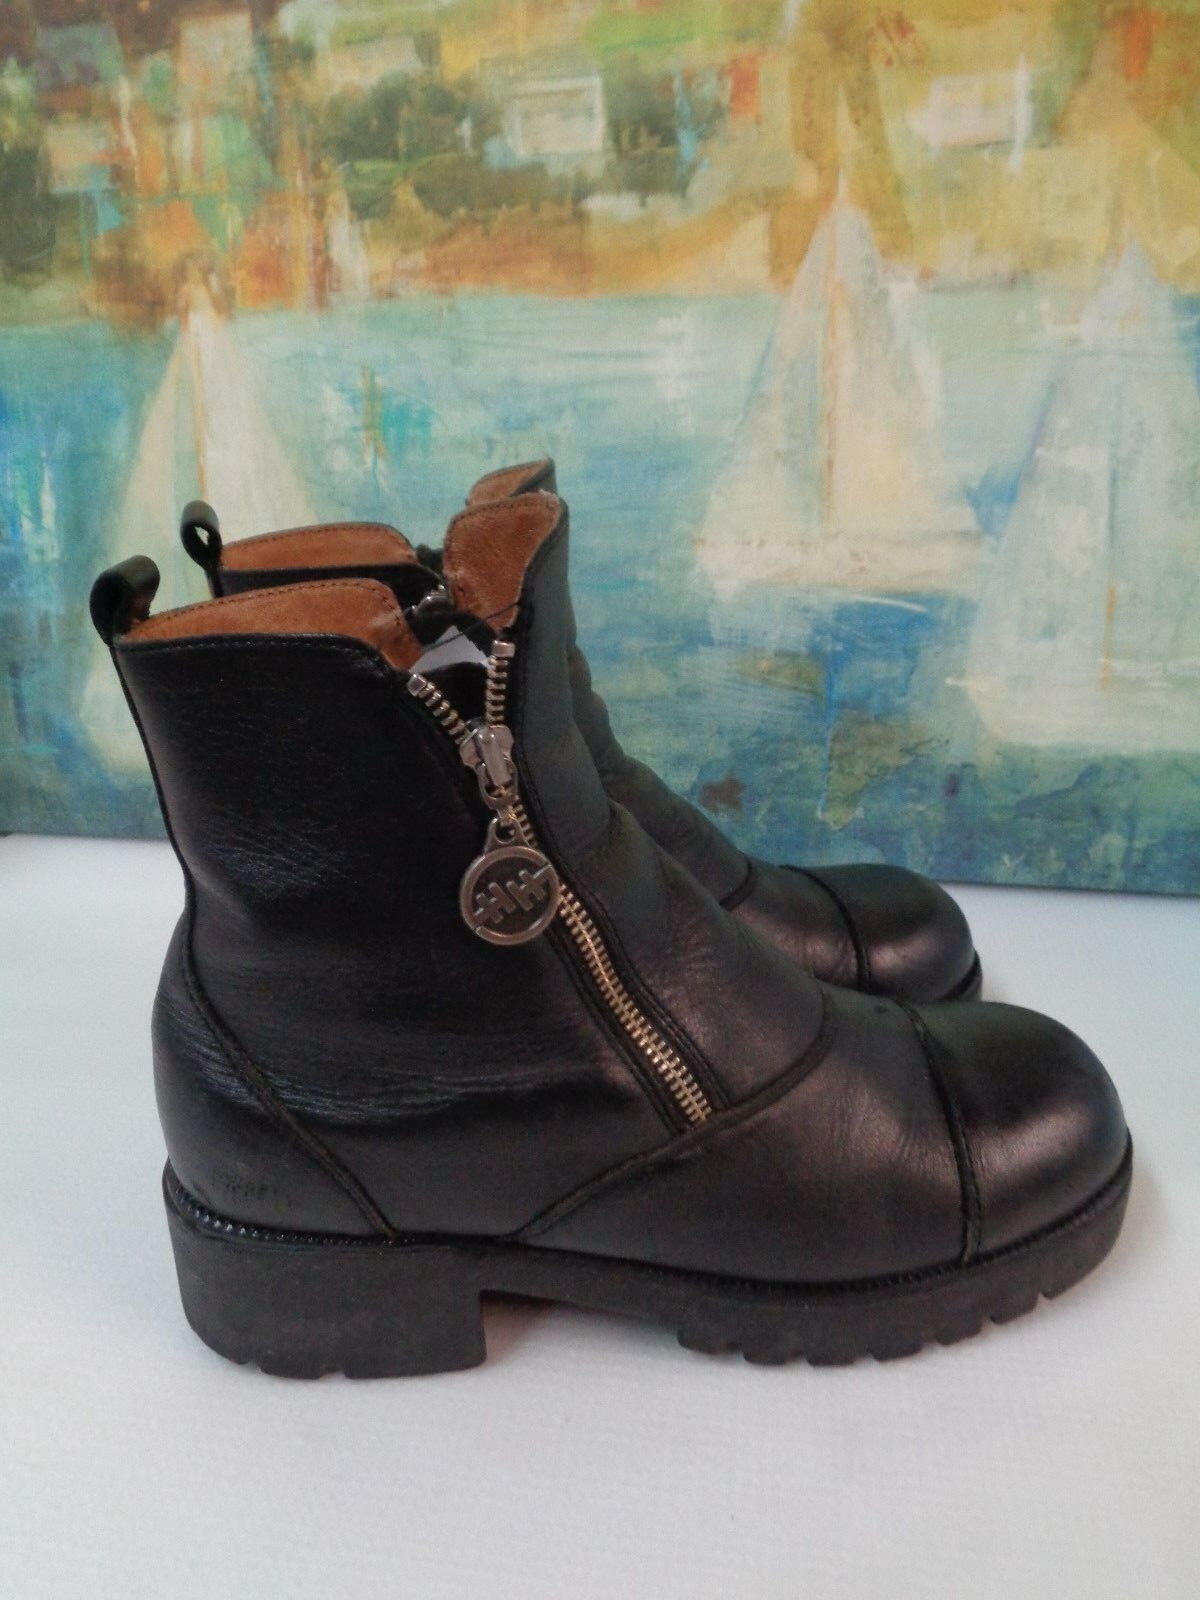 DOUBLE H or HH HH HH Beetle Ankle Hipster Double Zipper Boots 1 3 4  Women's Size 8.5 1a4034